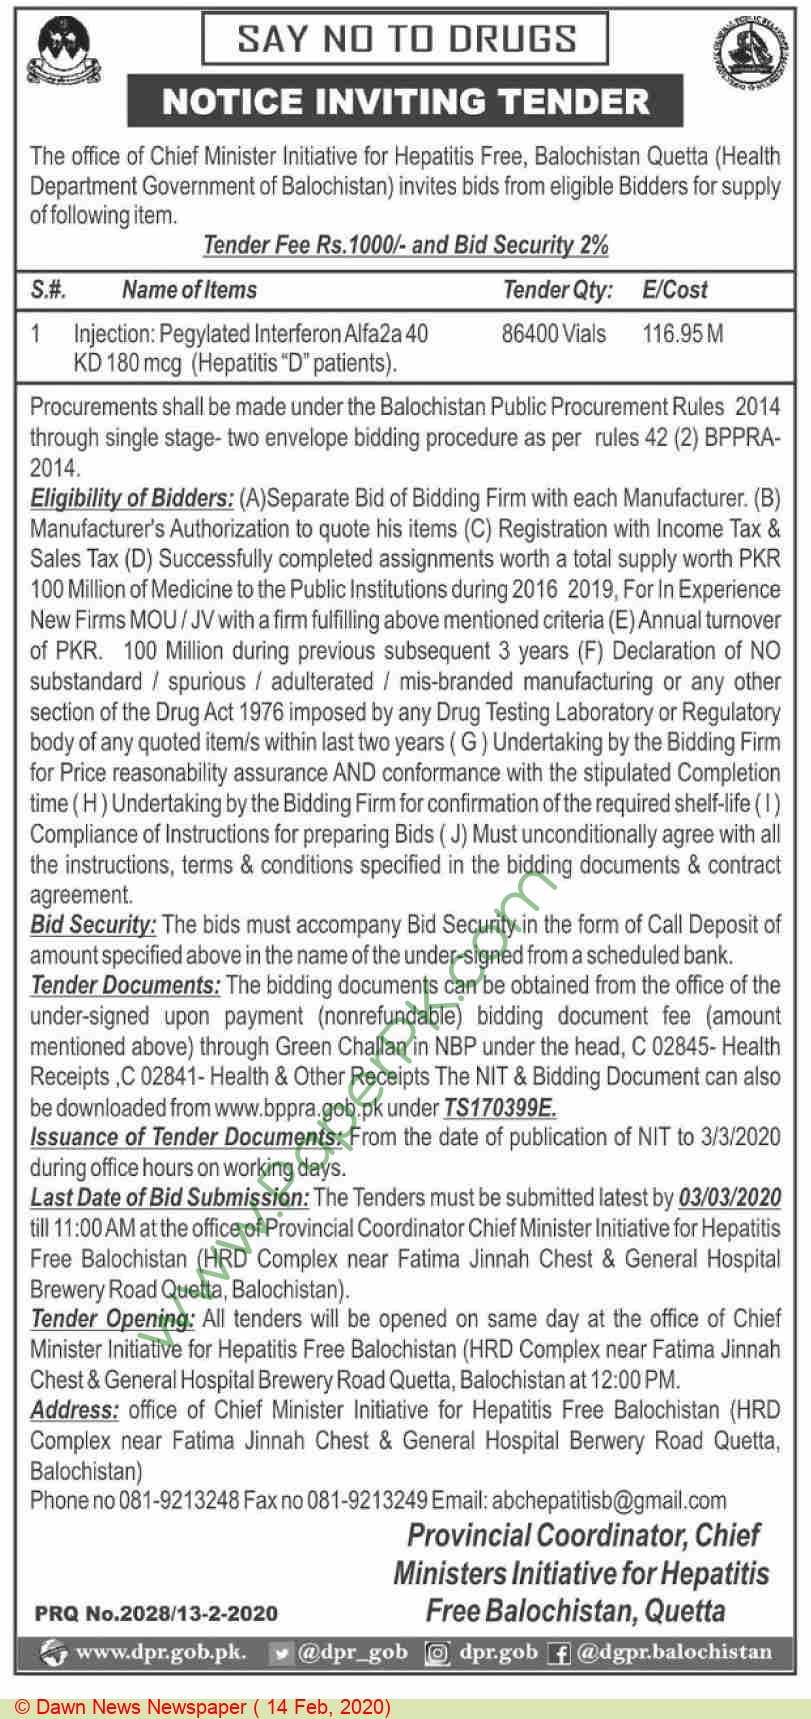 Chief Minister Initiative For Hepatitis Free Balochistan Quetta Tender Notice